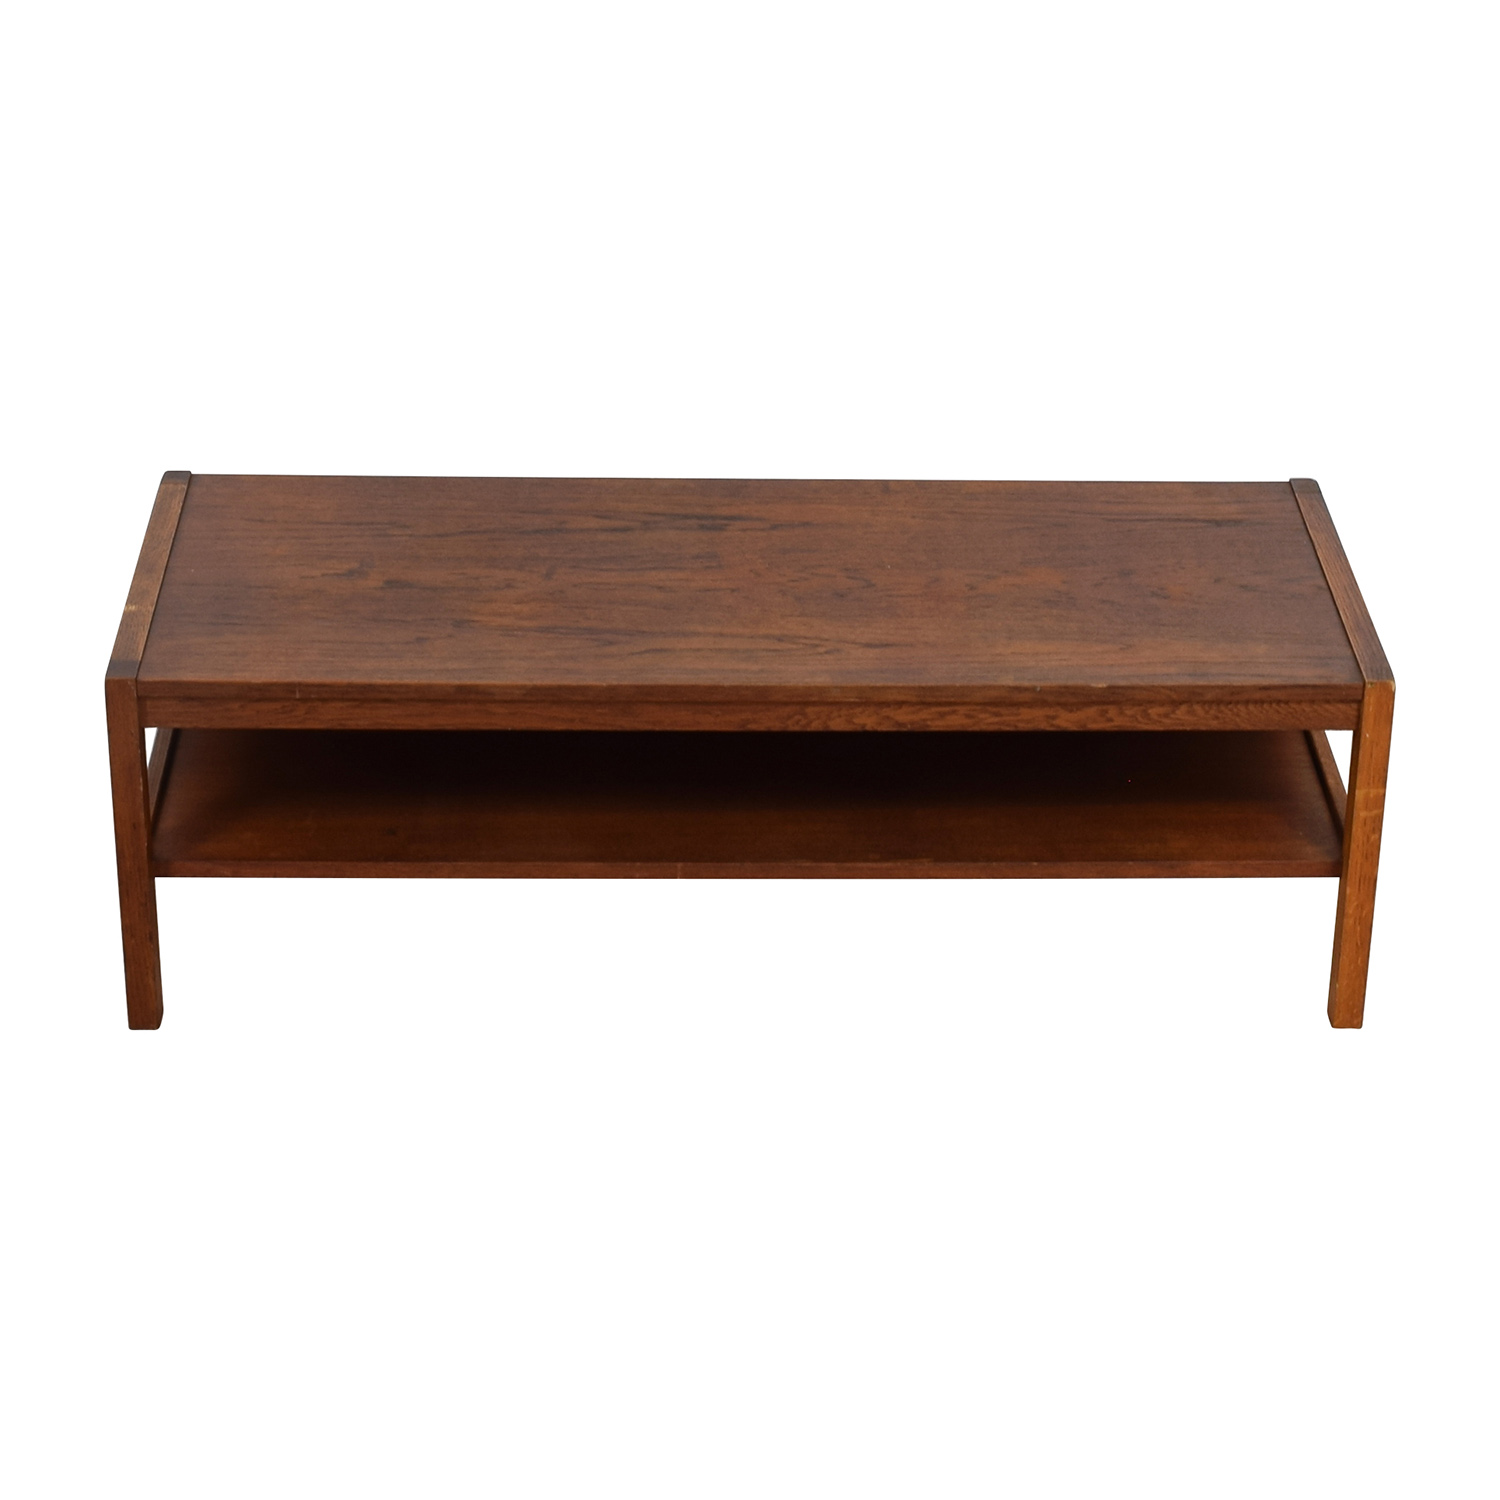 ... Workbench Workbench Mid Century Wood Coffee Table W/Expansion Leaf For  Sale ...